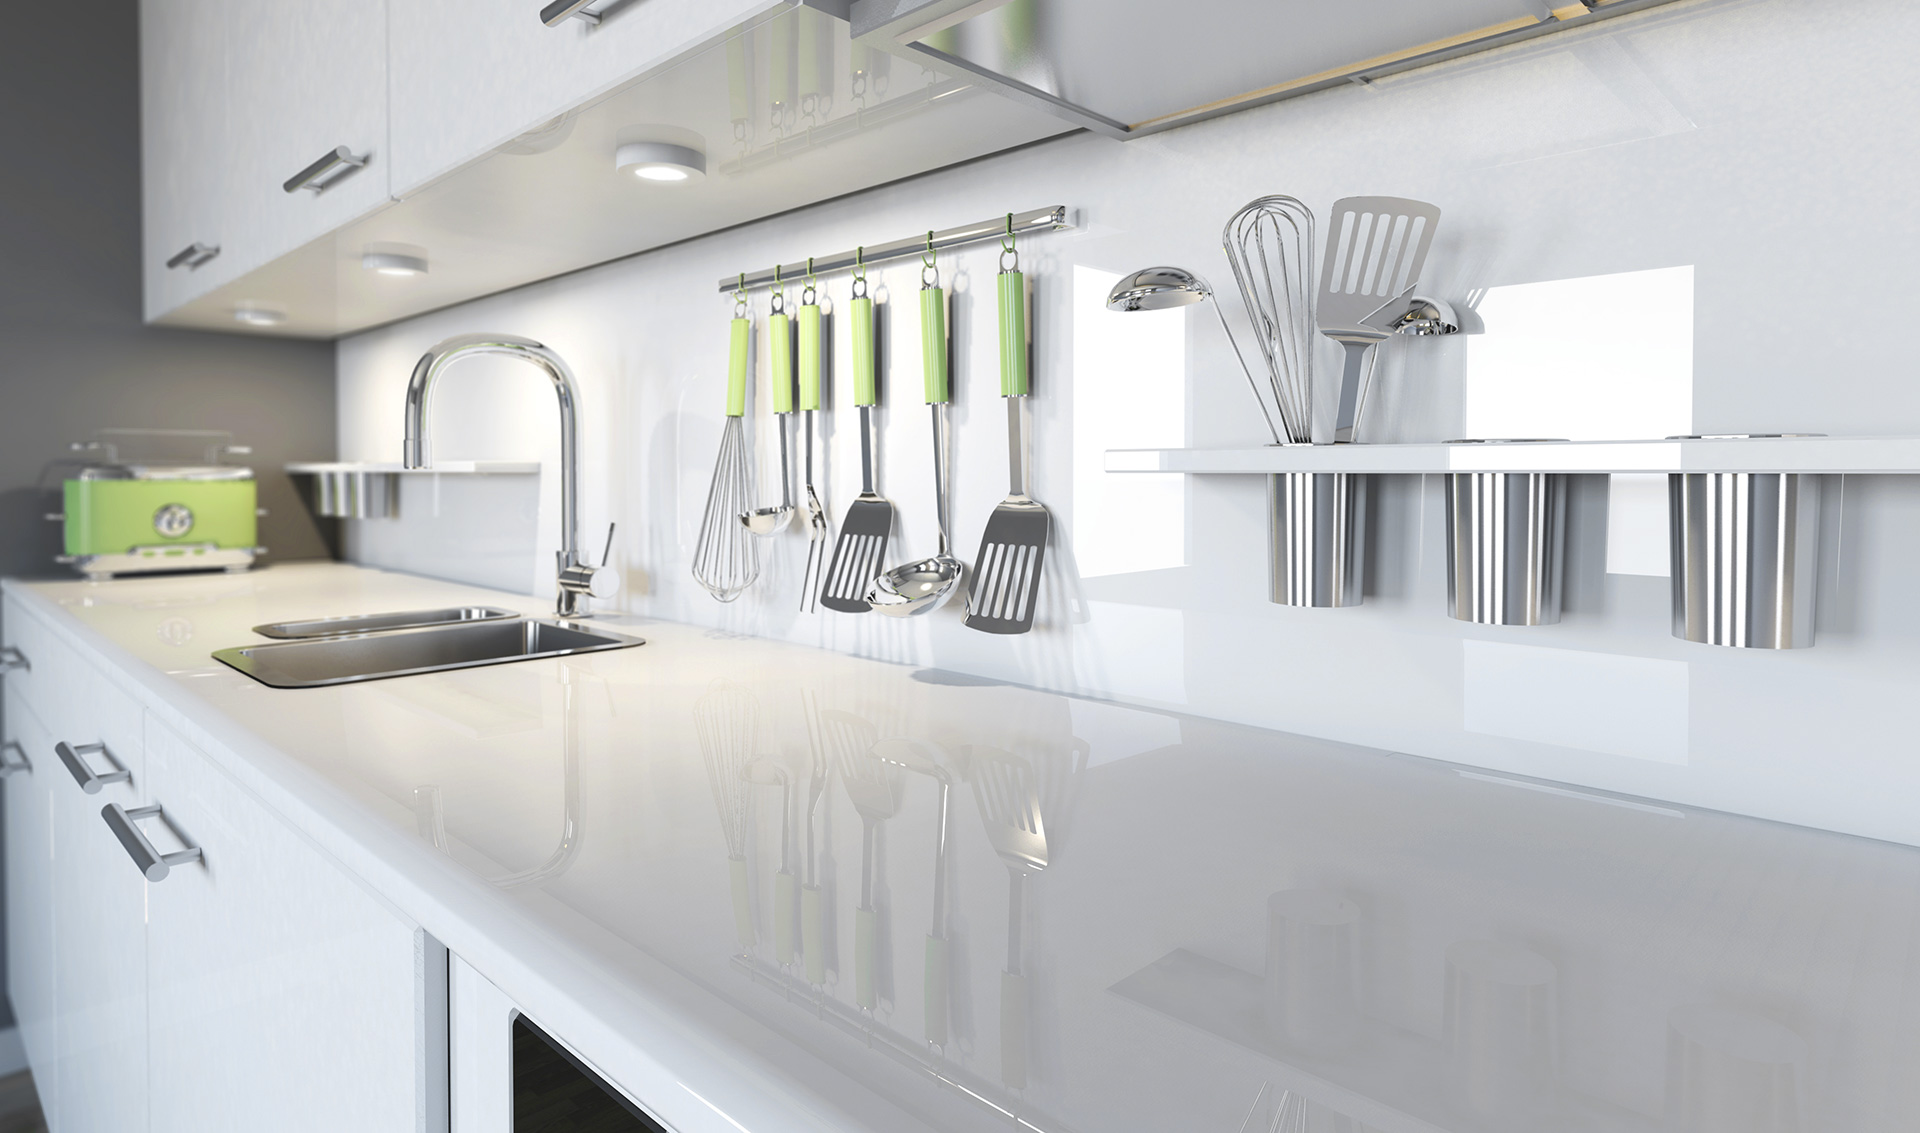 Kitchen Clean - Kelowna Cleaning Services All About Details